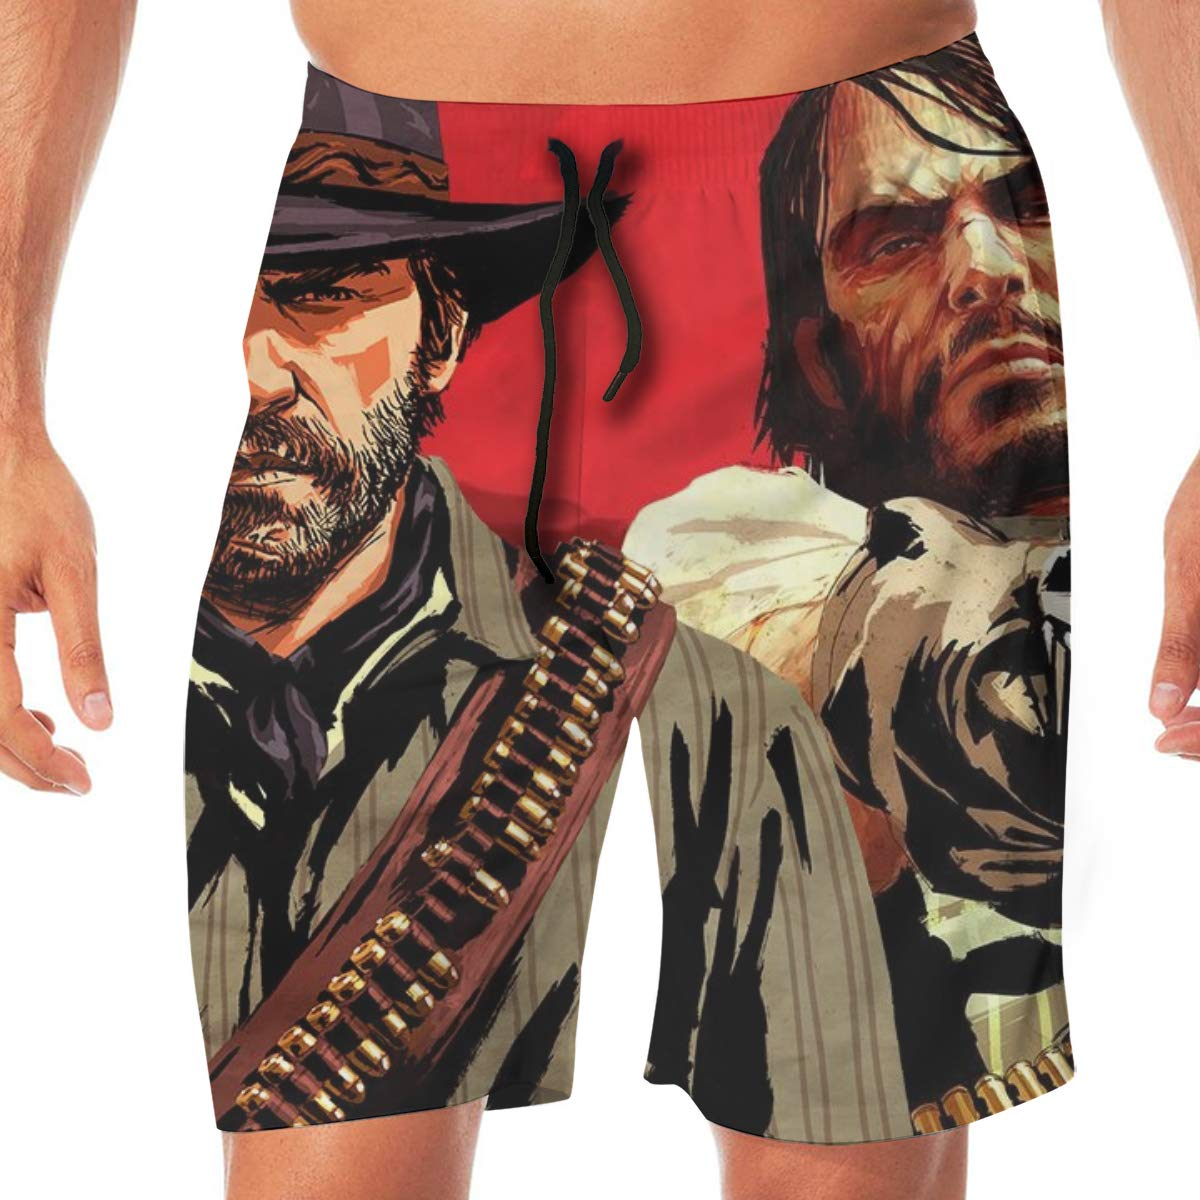 FANGHUABATHRHSQ Red-Dead-Redemption 3D Print Mens Board Beach Shorts Holiday Swimwear Pants Boardshort Swim Trunks Bathing Suits